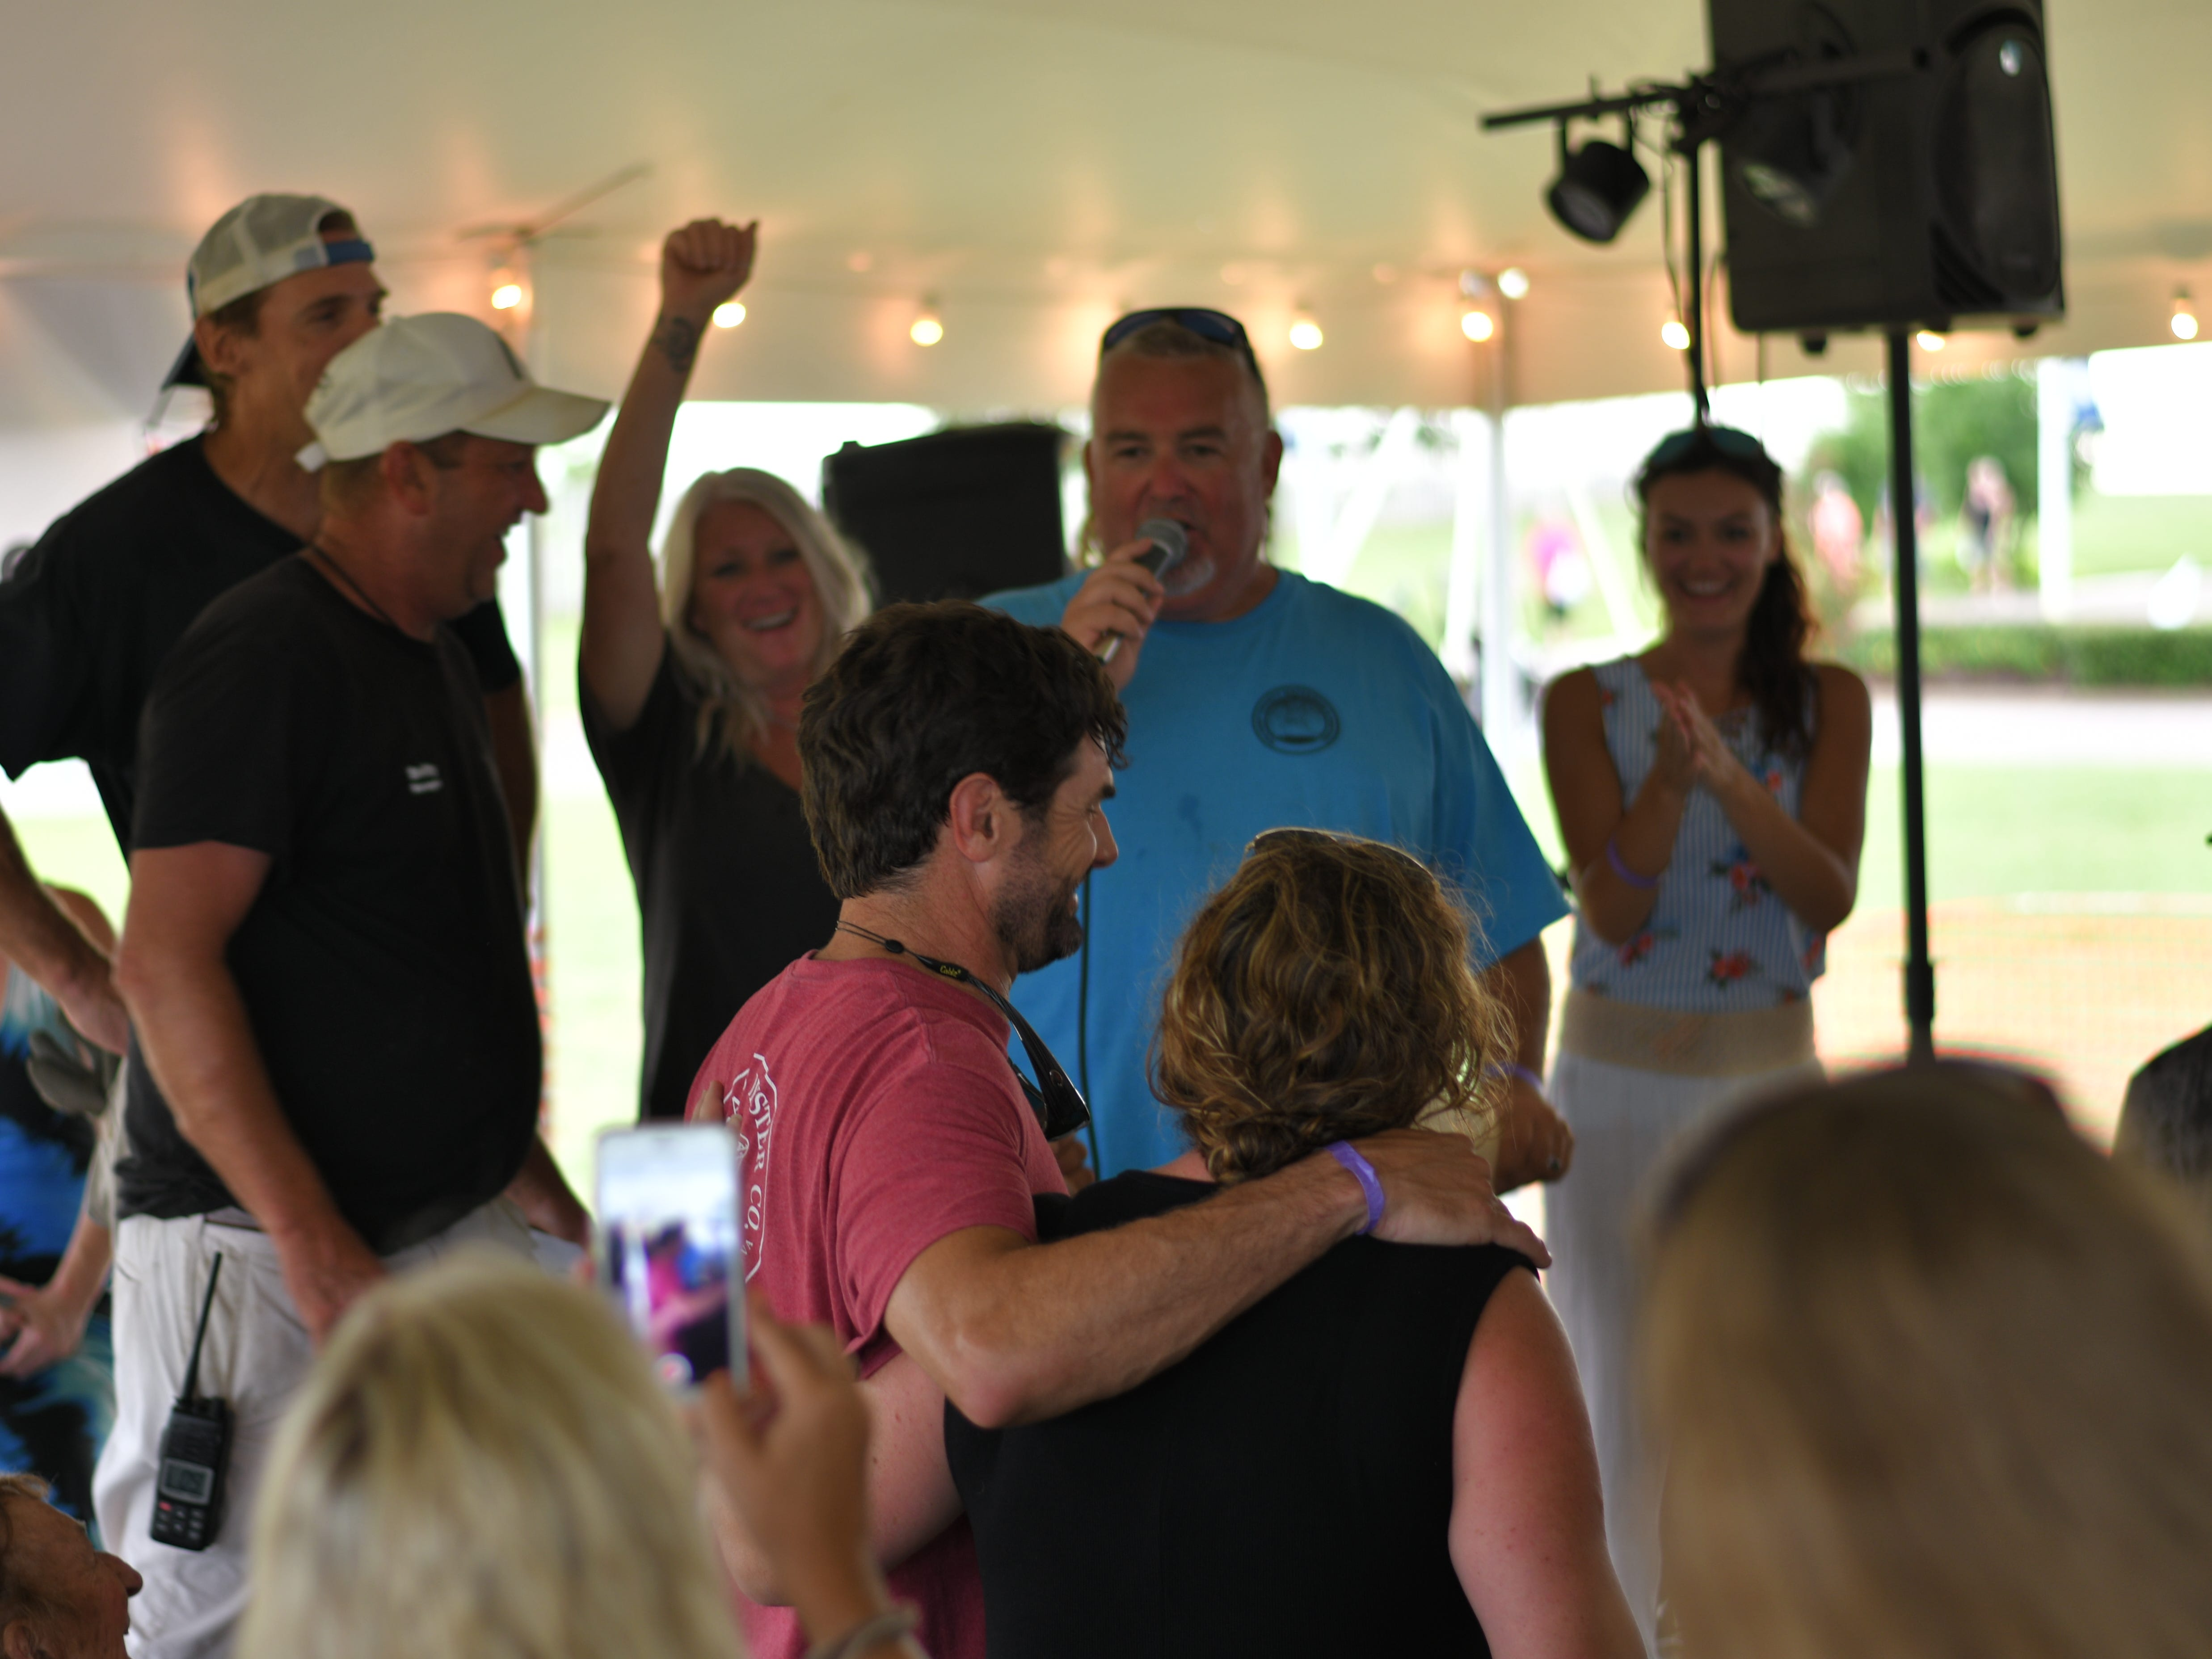 Chris Buck and Tiffany Mohr are pronounced first place winners after shucking and eating 108 raw oysters at the 3rd Annual Oyster Eating Contest at the Oyster Farm in Cape Charles.